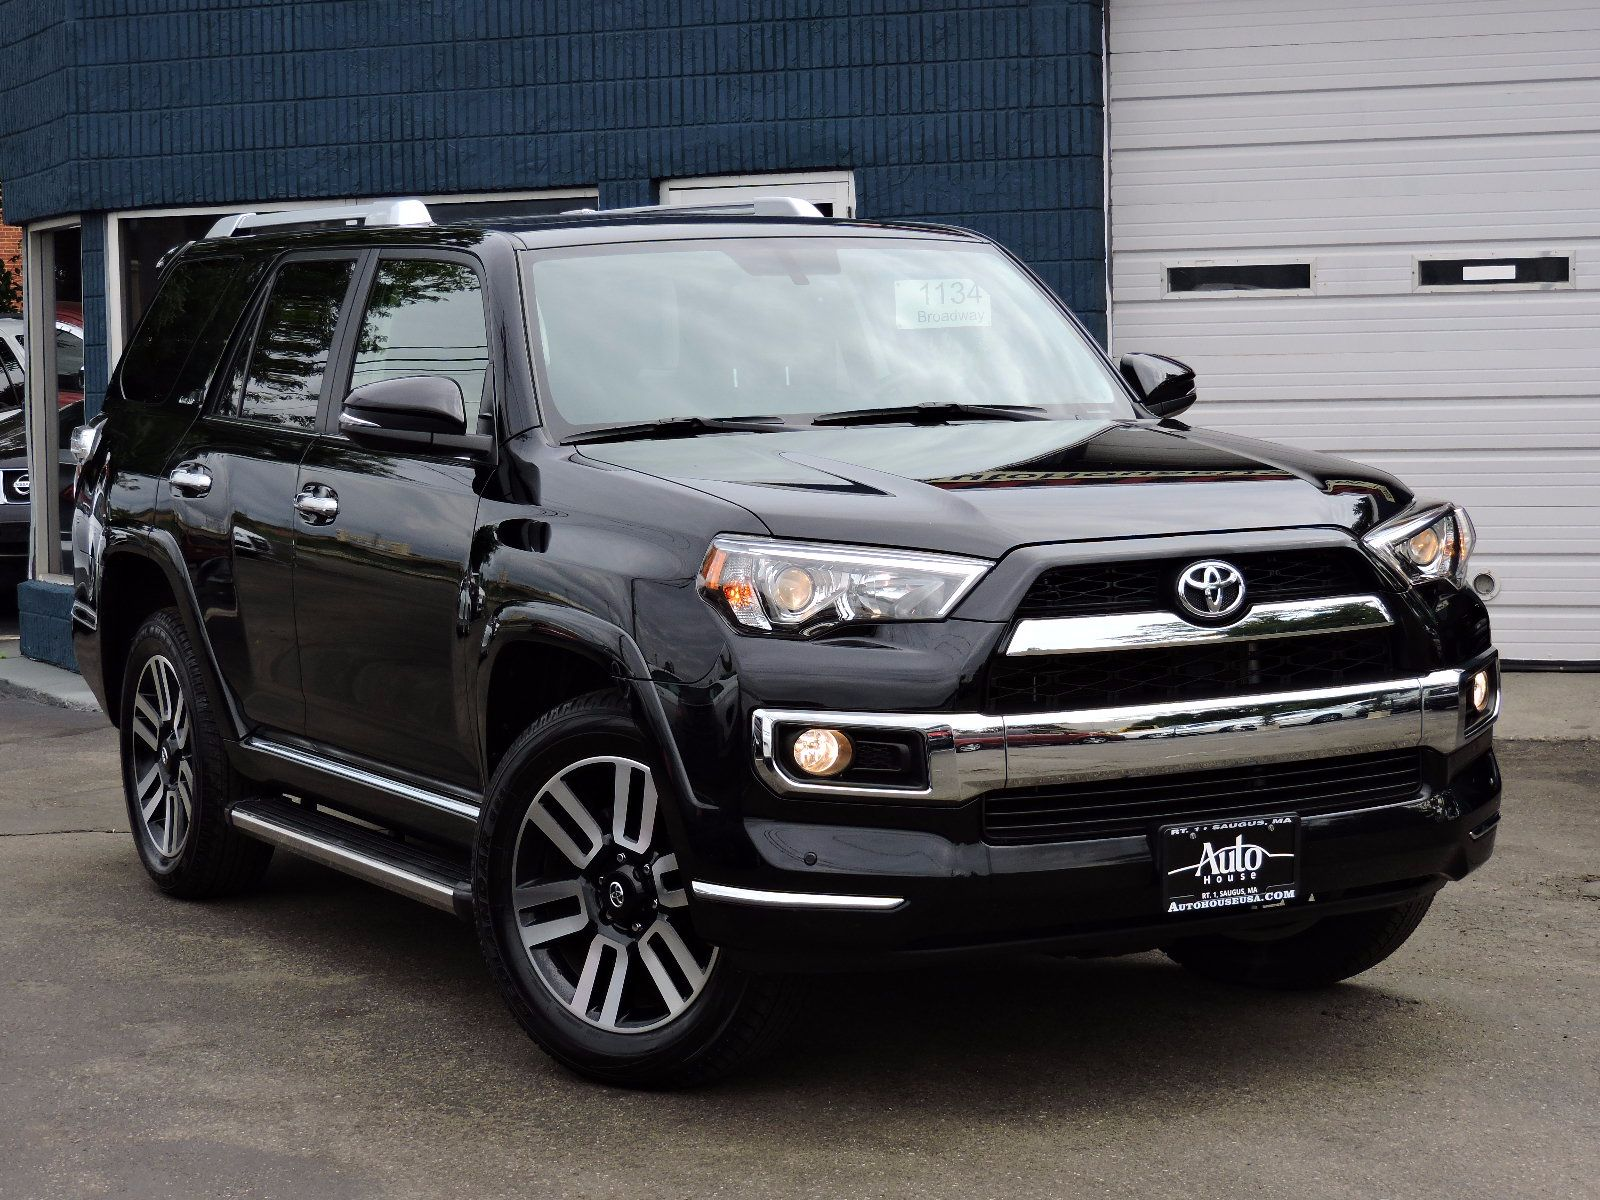 toyota 4runner service schedule latest news car. Black Bedroom Furniture Sets. Home Design Ideas